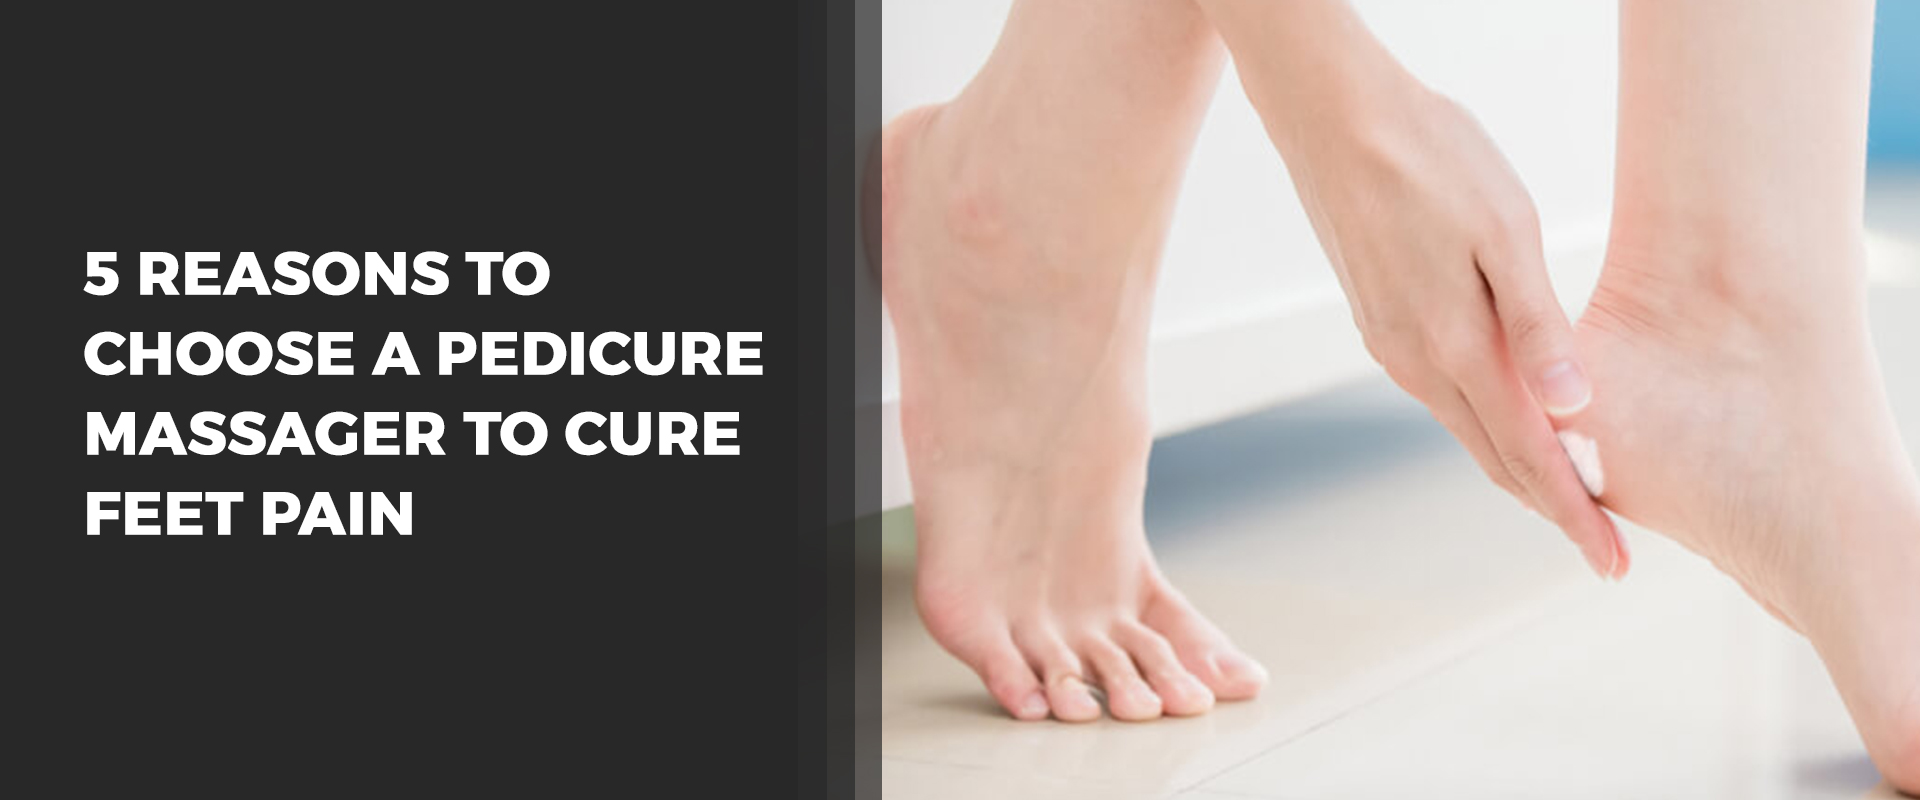 A Guide To Get Rid OF Cracked Feet In A Week